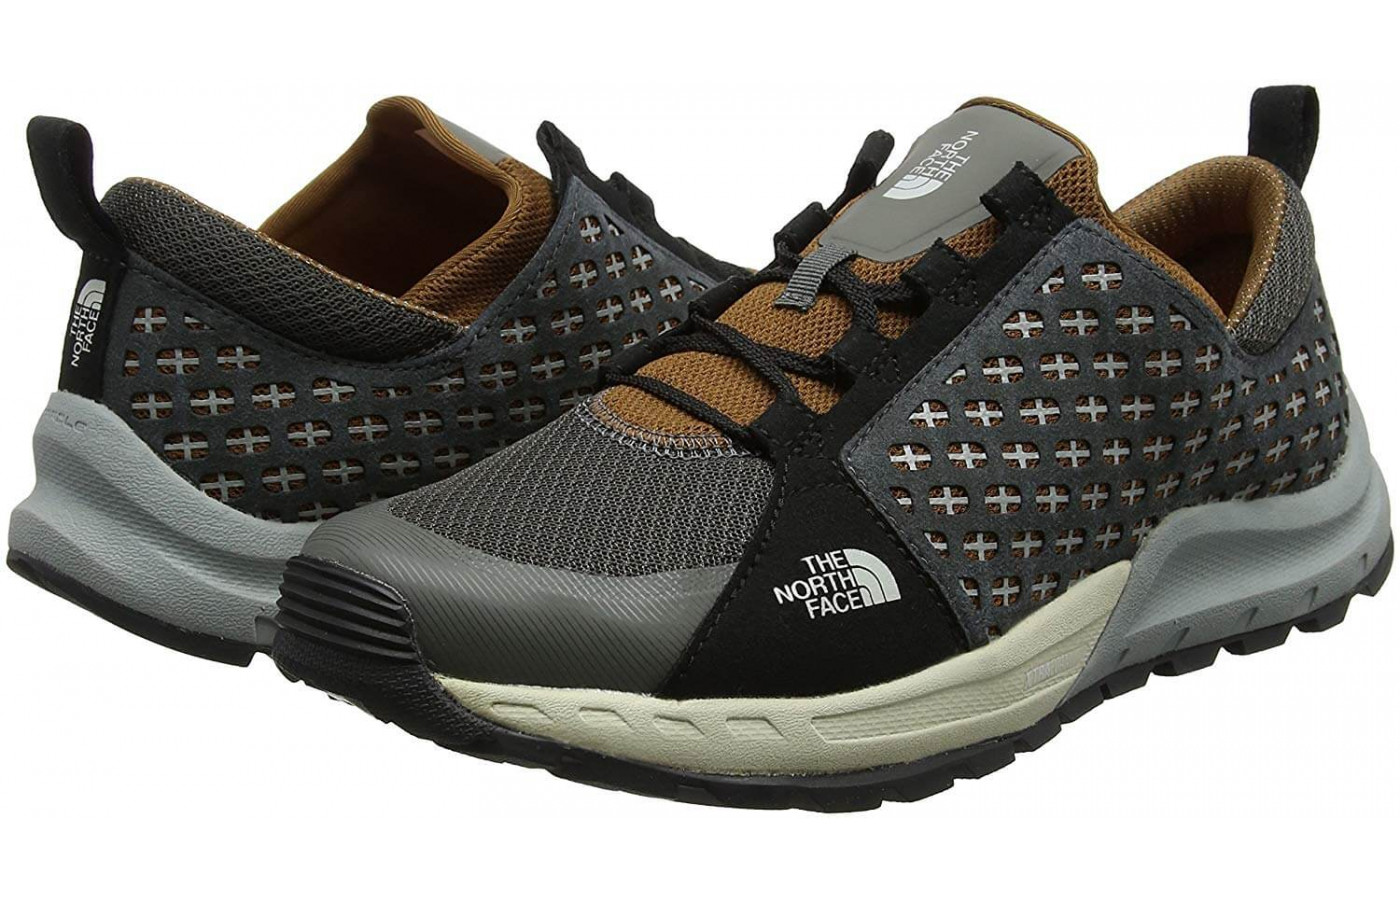 The North Face Mountain Sneaker left right